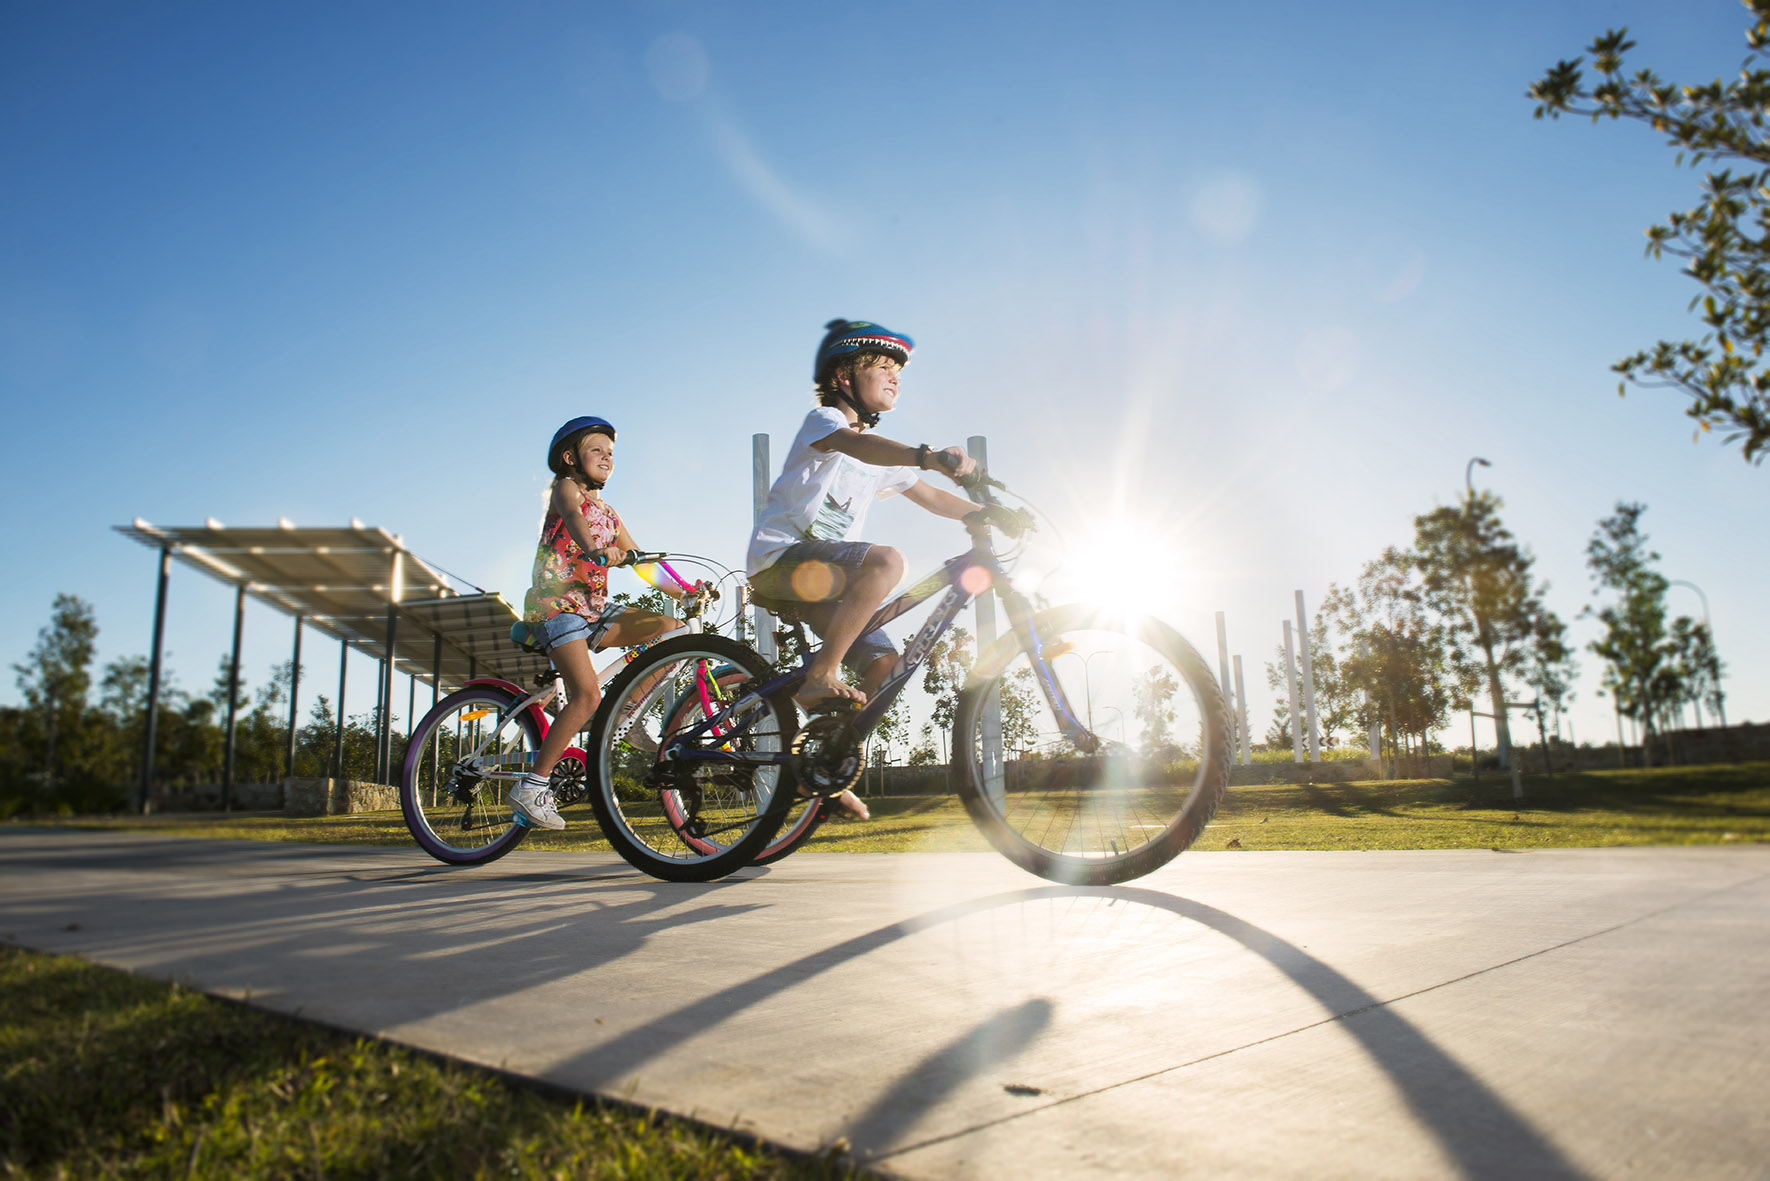 Kids riding their bikes around Yarrabilba, Queensland Australia